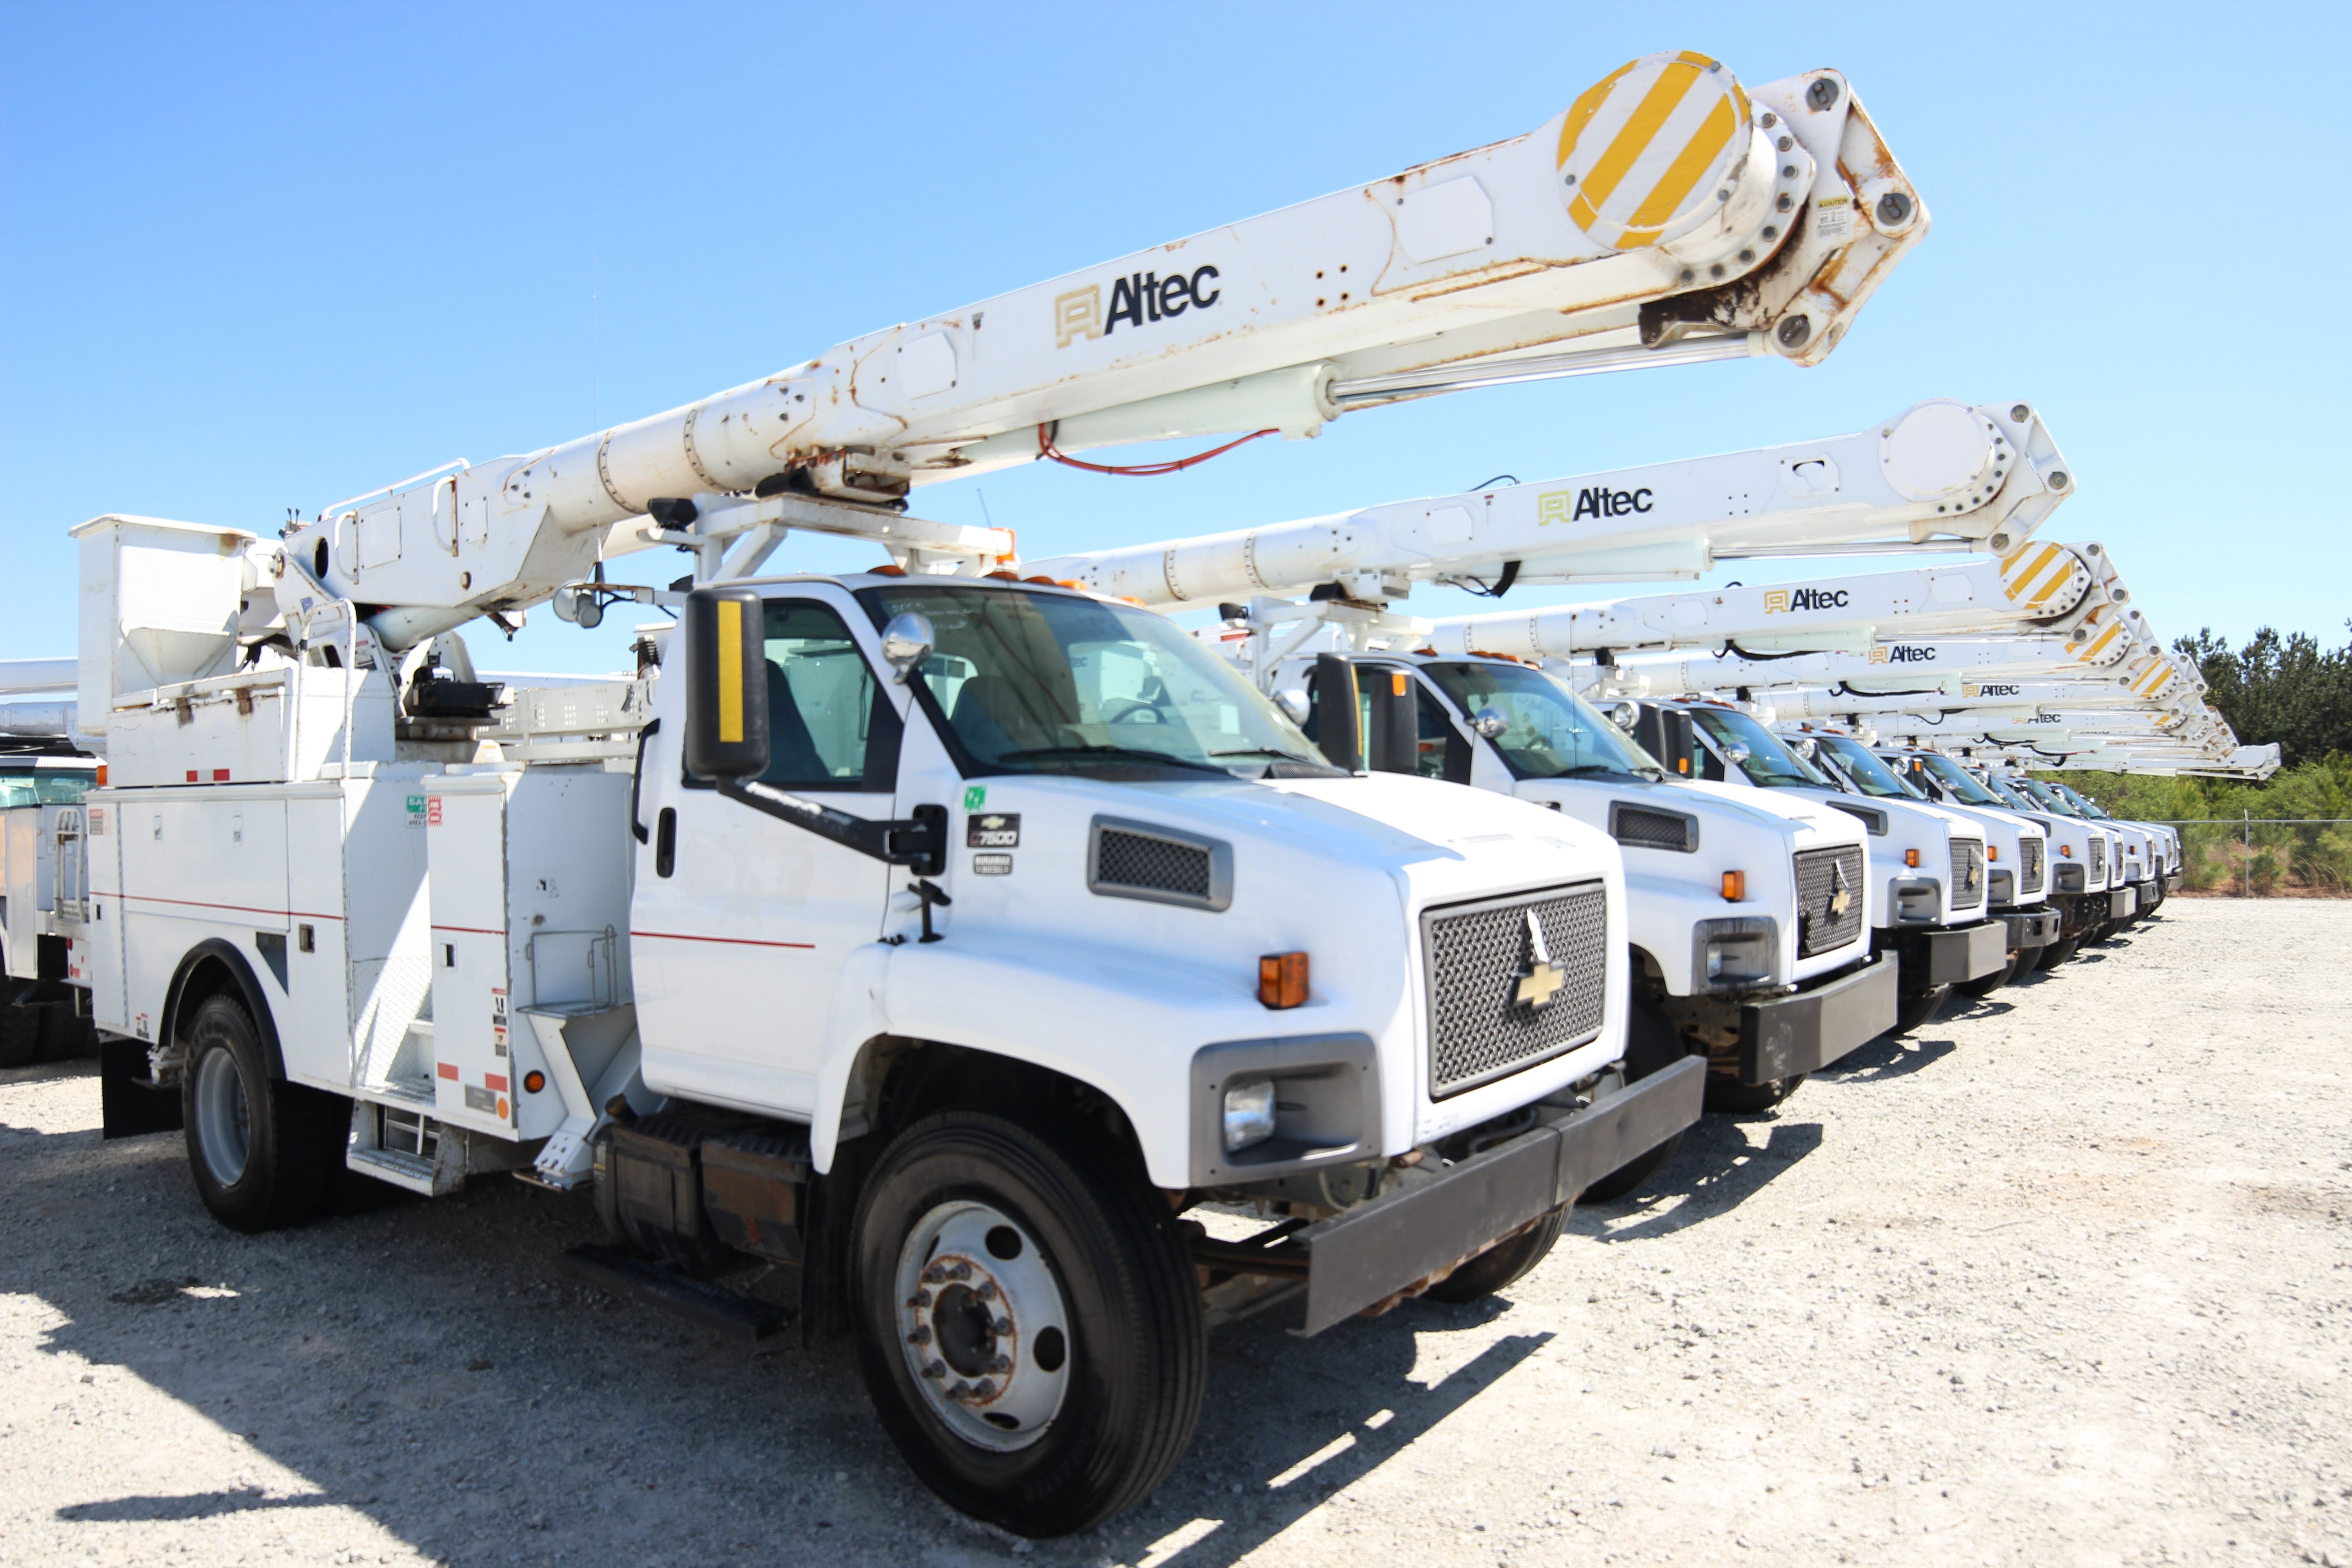 Used Bucket Trucks For Sale >> Used Altec Am Bucket Trucks Used Bucket Trucks For Sale At Auction